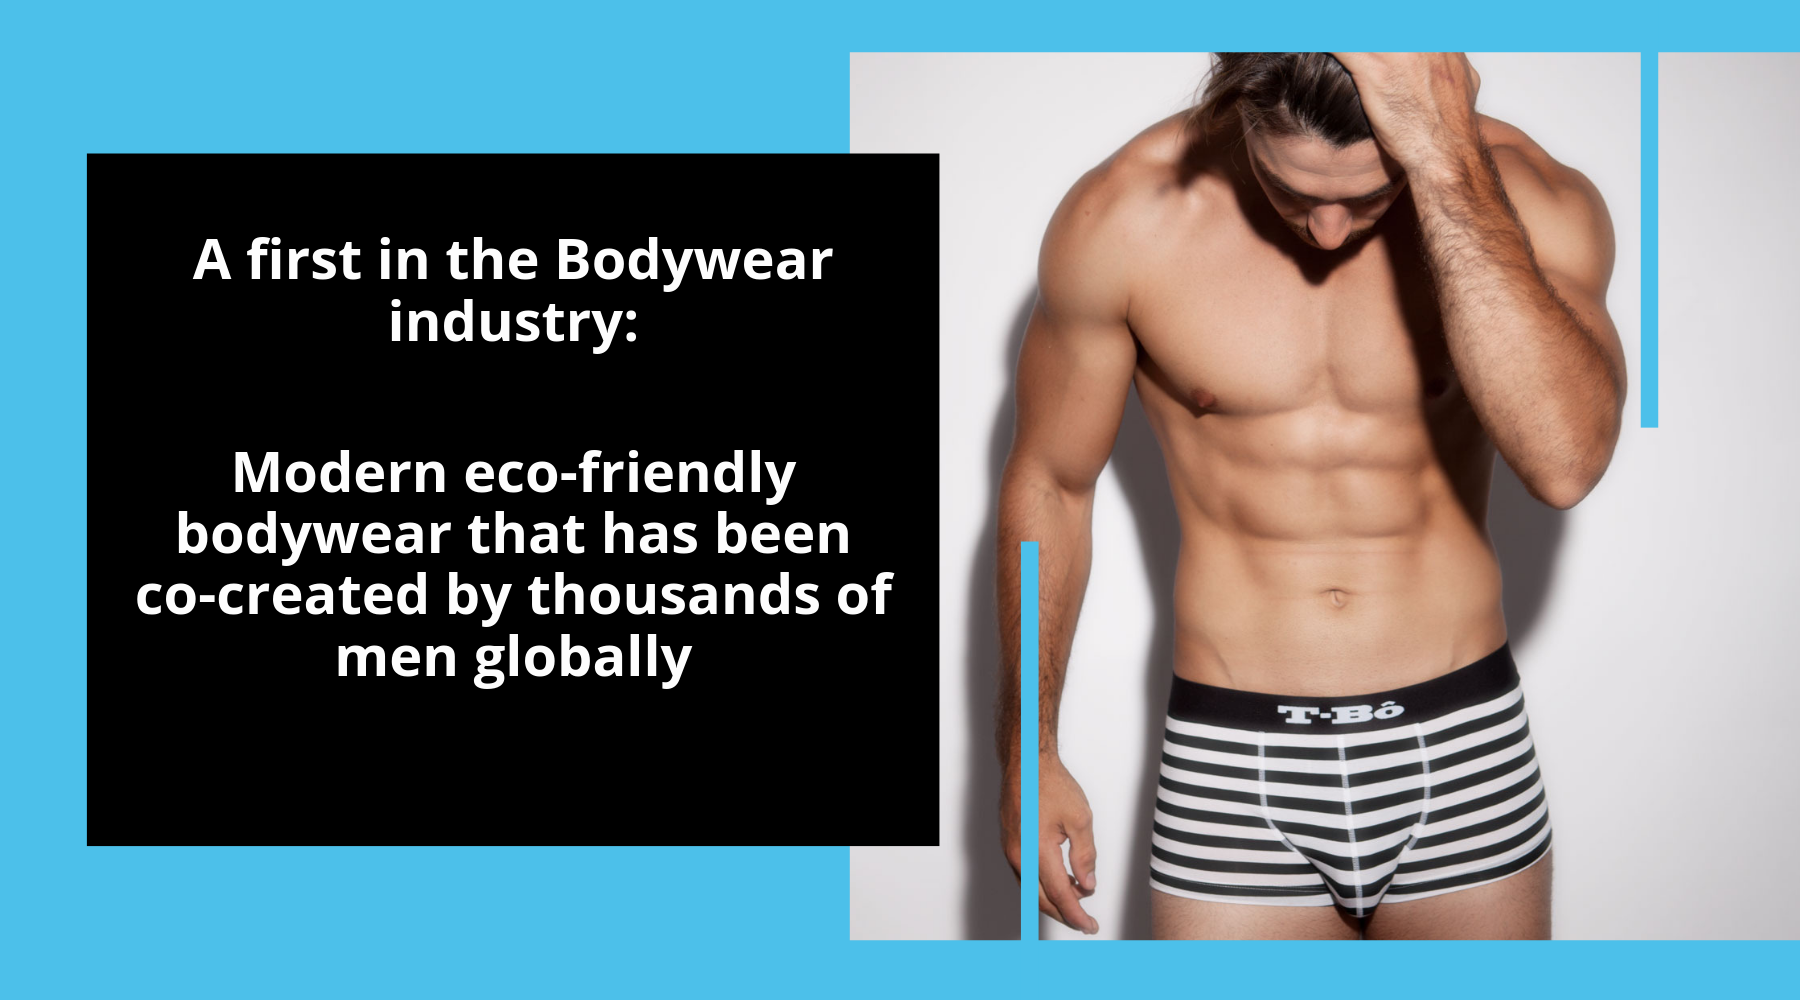 A first in the Bodywear industry: Modern eco-friendly bodywear that has been co-created by thousands of men globally